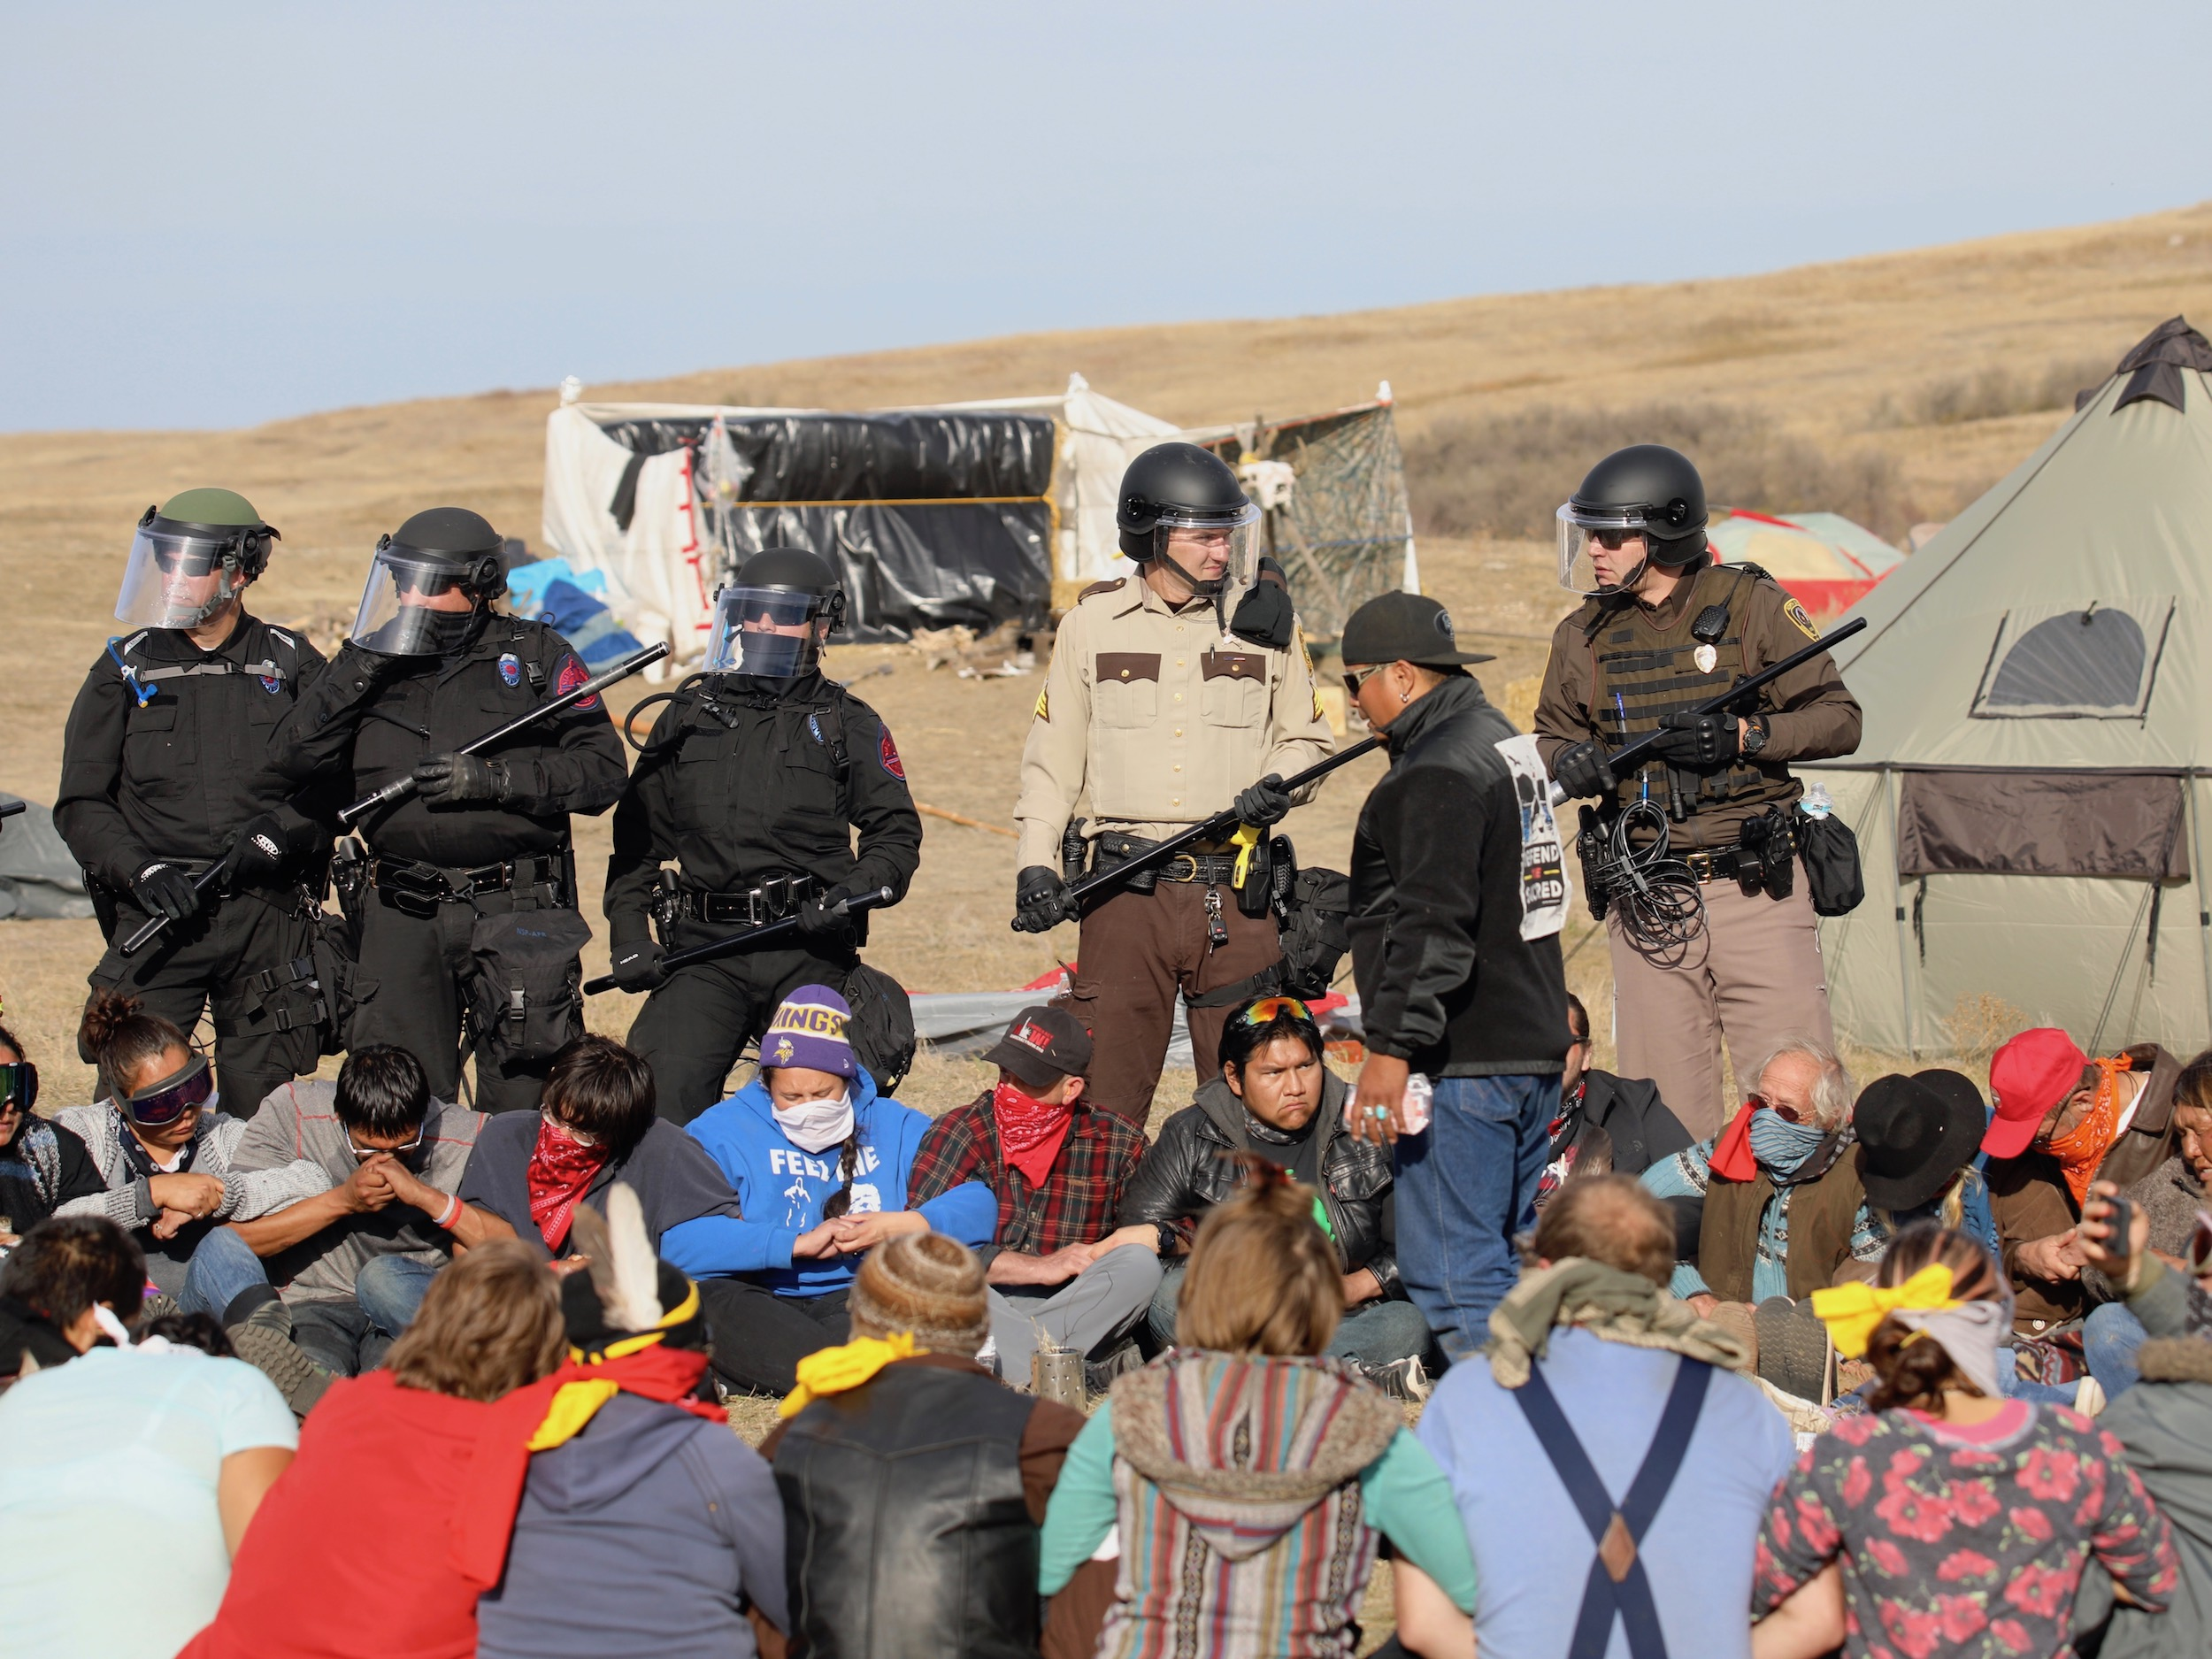 Tim Giago: Water protectors must continue to remain peaceful as #NoDAPL fight continues